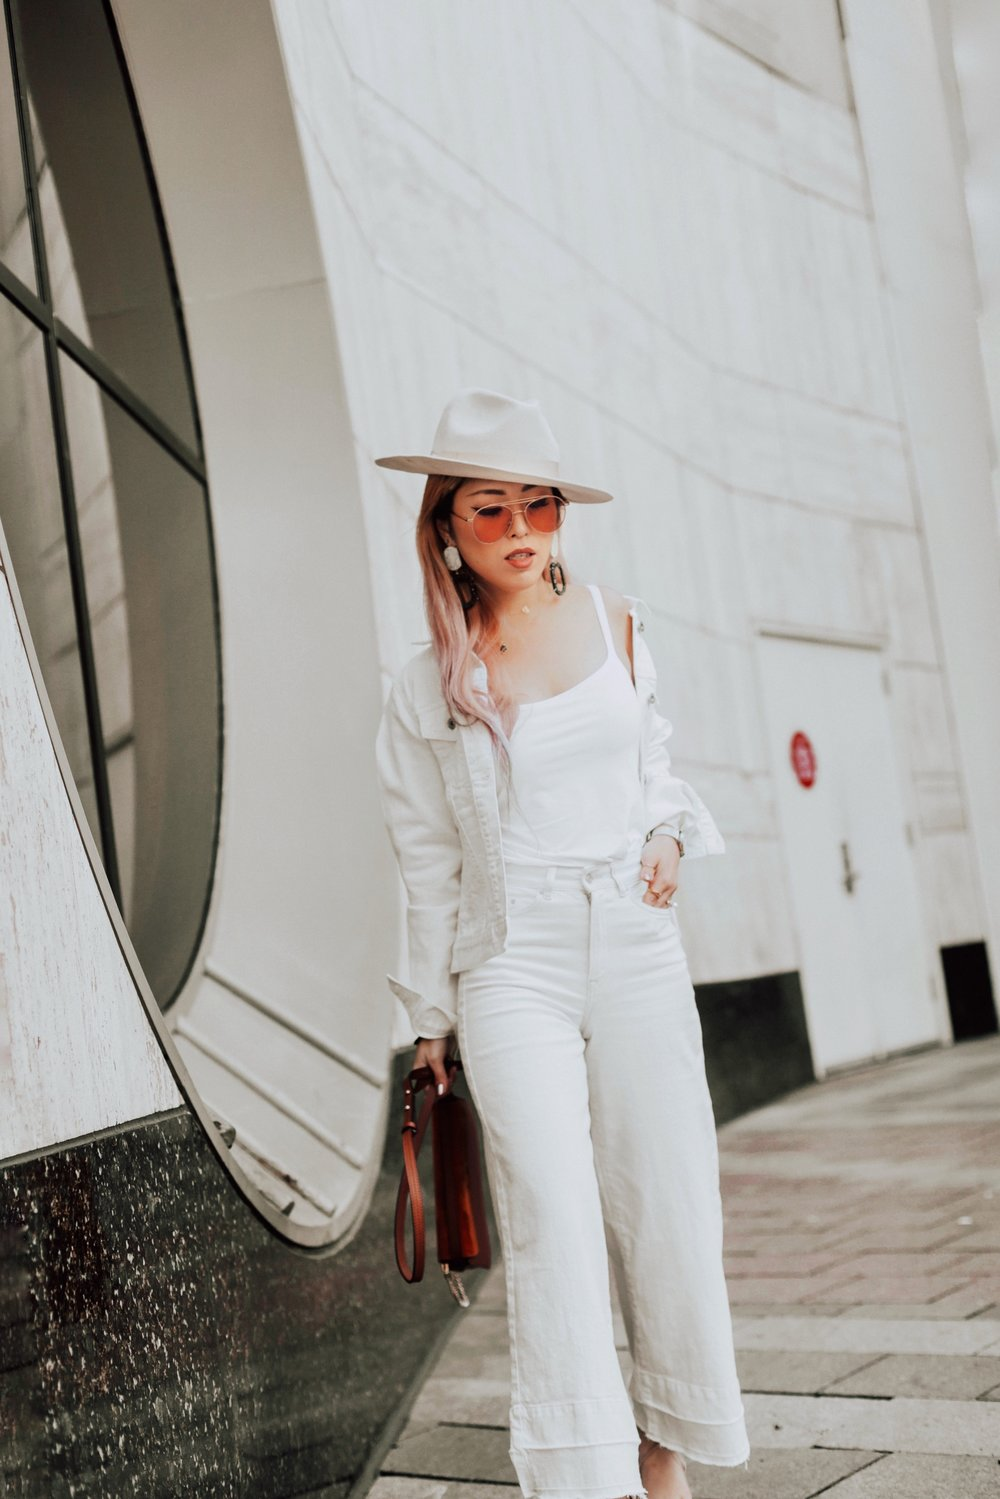 Uniqlo AIRism Bratop_Uniqlo White Denim Jacket_H&M White Cropped flare jeans-Lack Of color Ivory Bone Fedora_ASOS Marble Drop Earrings_Chloe Blown Small Faye Leather Shoulder Bag-Zero UV Sunglasses-Nude Lace Up Heels-Aikas Love Closet-Seattle Fashion Blogger-Japanese-pink hair-petite 3